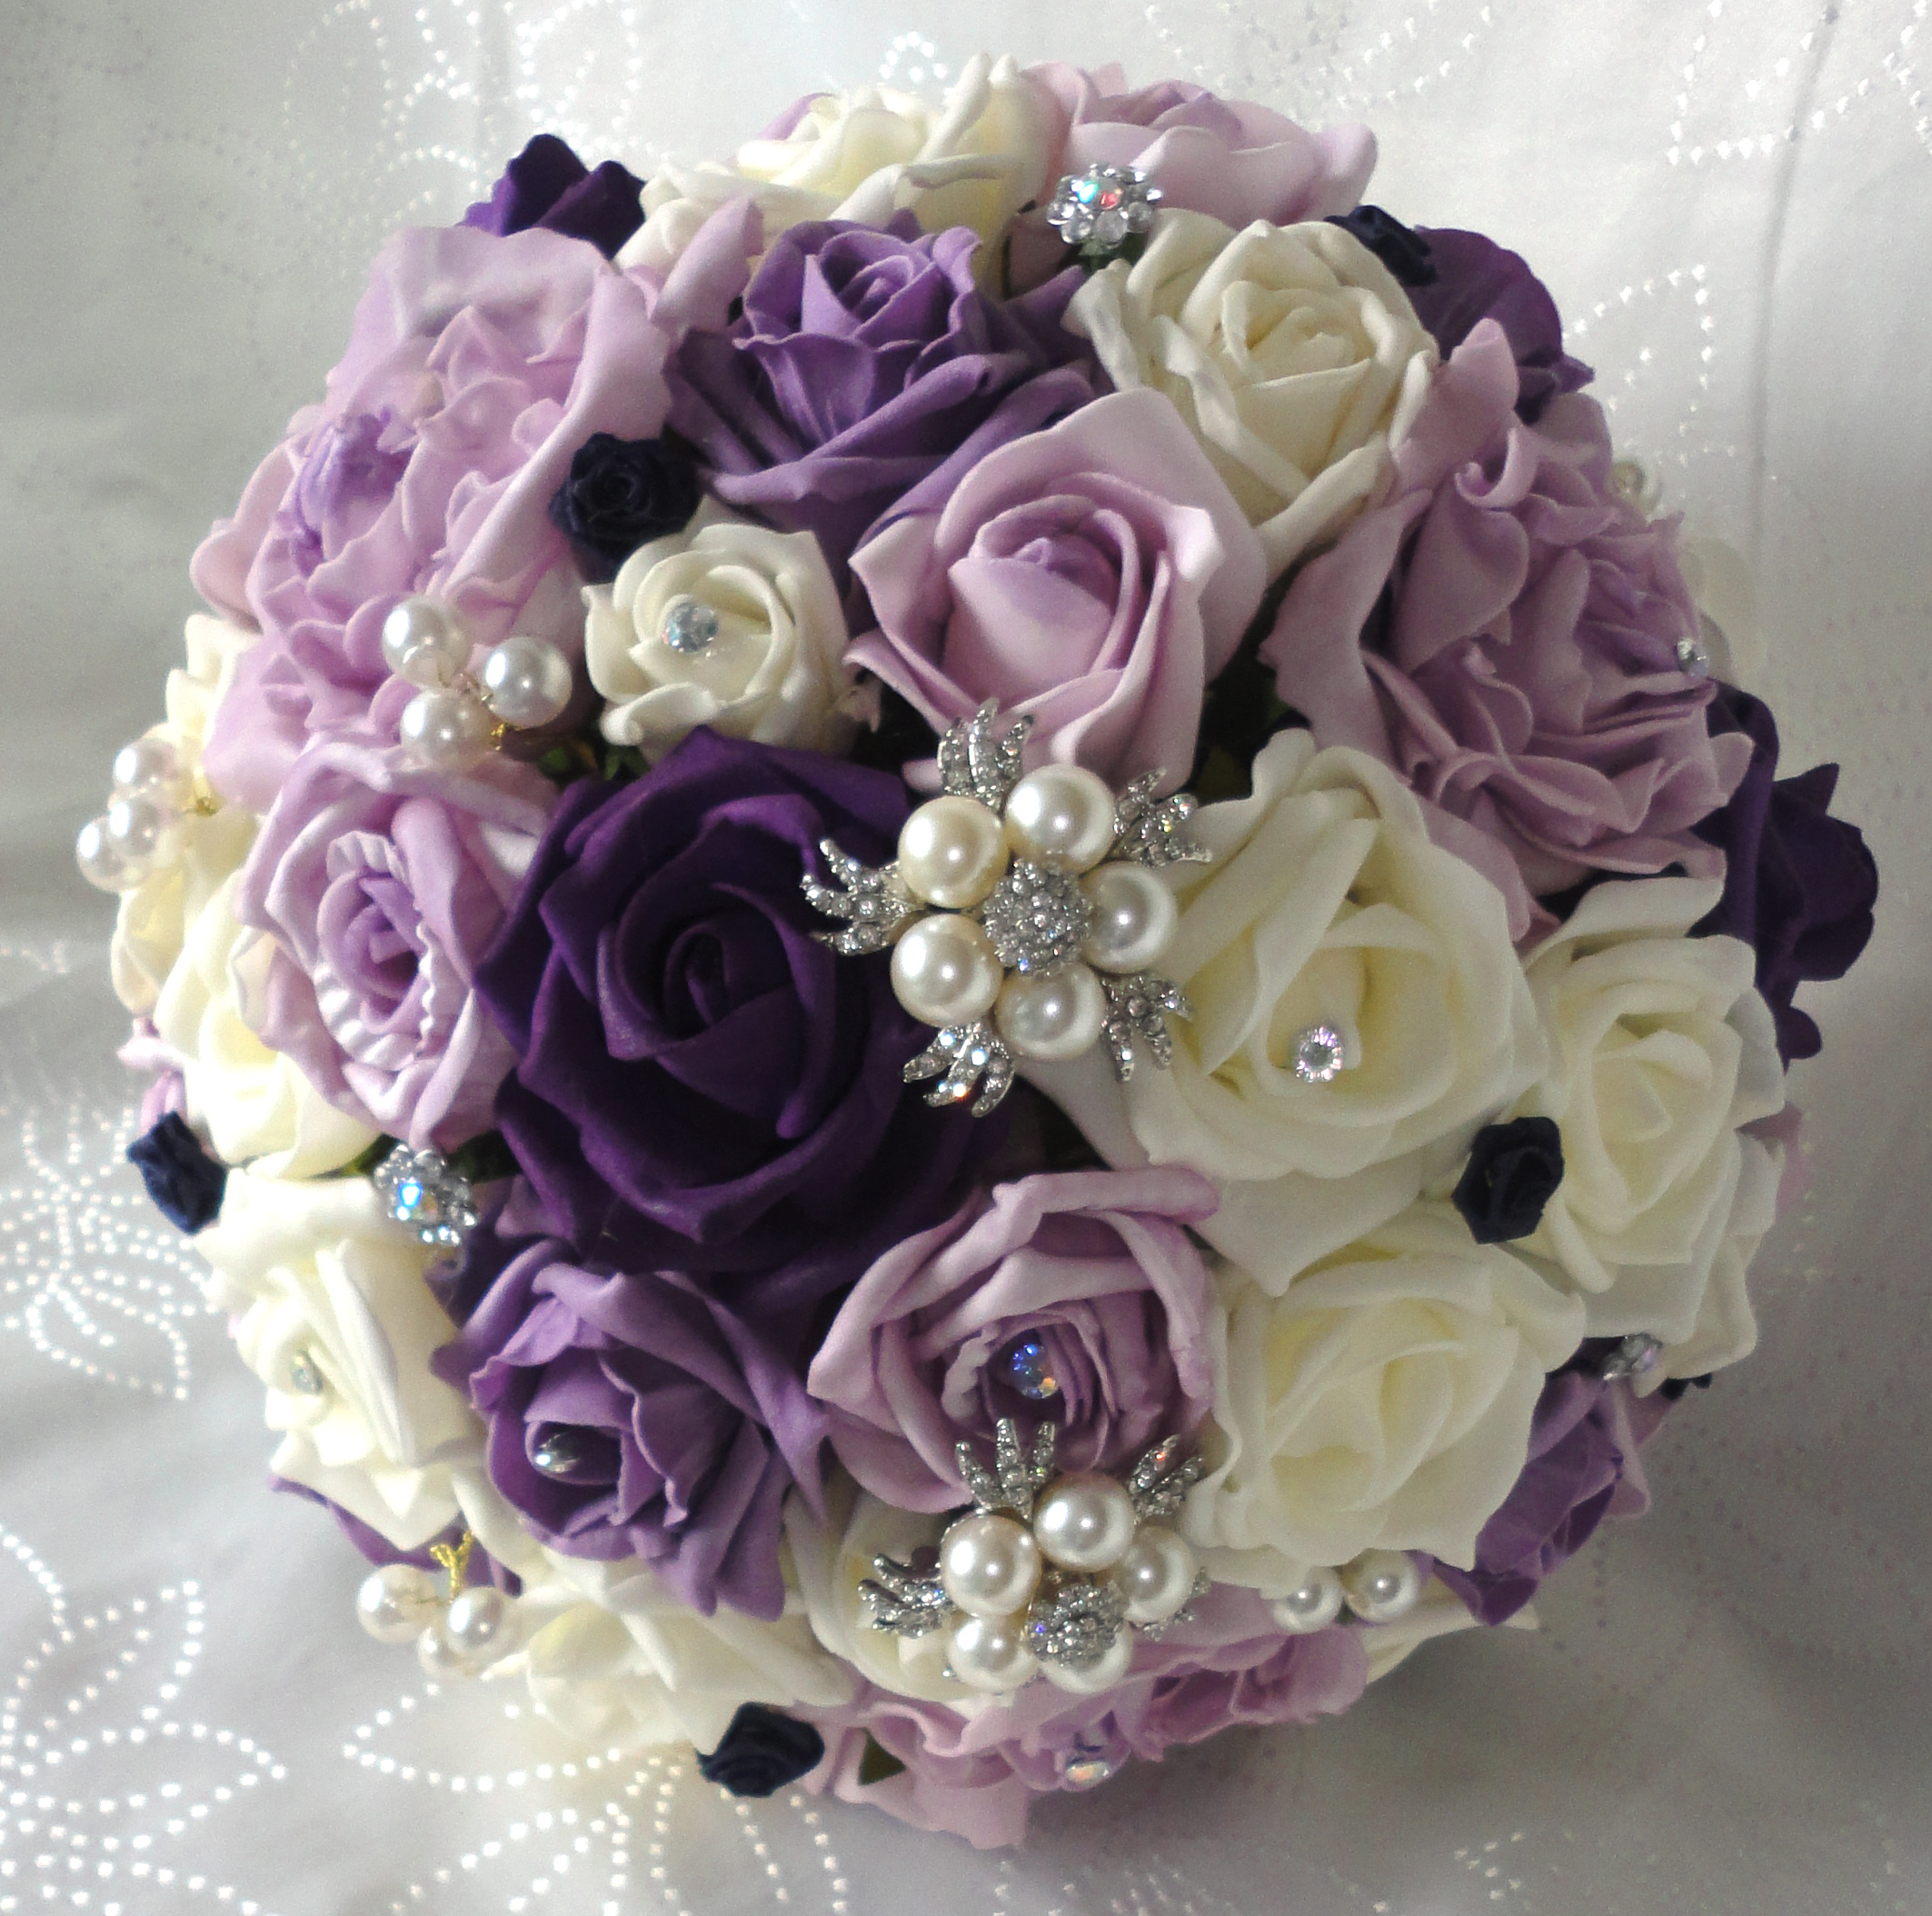 Purple silk wedding flowers images flower decoration ideas purple and ivory wedding flowers purple lisianthus and ivory roses image gallery ivory and lilac bouquet izmirmasajfo